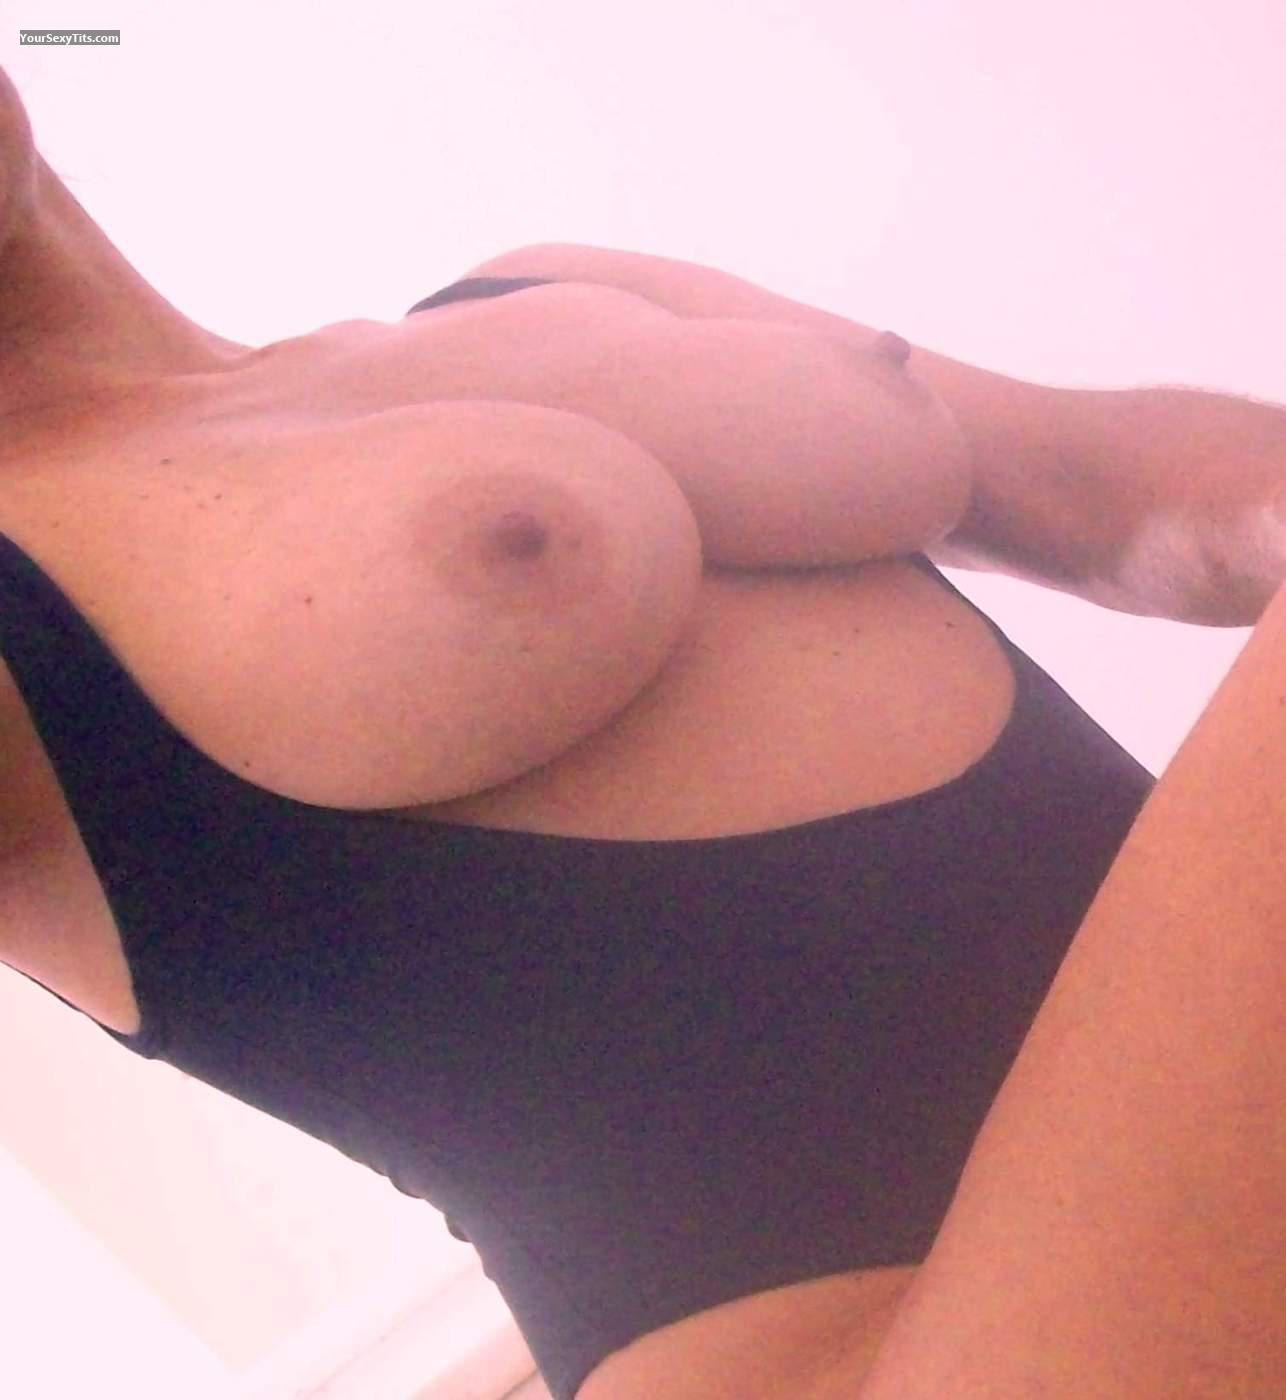 Tit Flash: Medium Tits - Fernanda From Brazil from United States